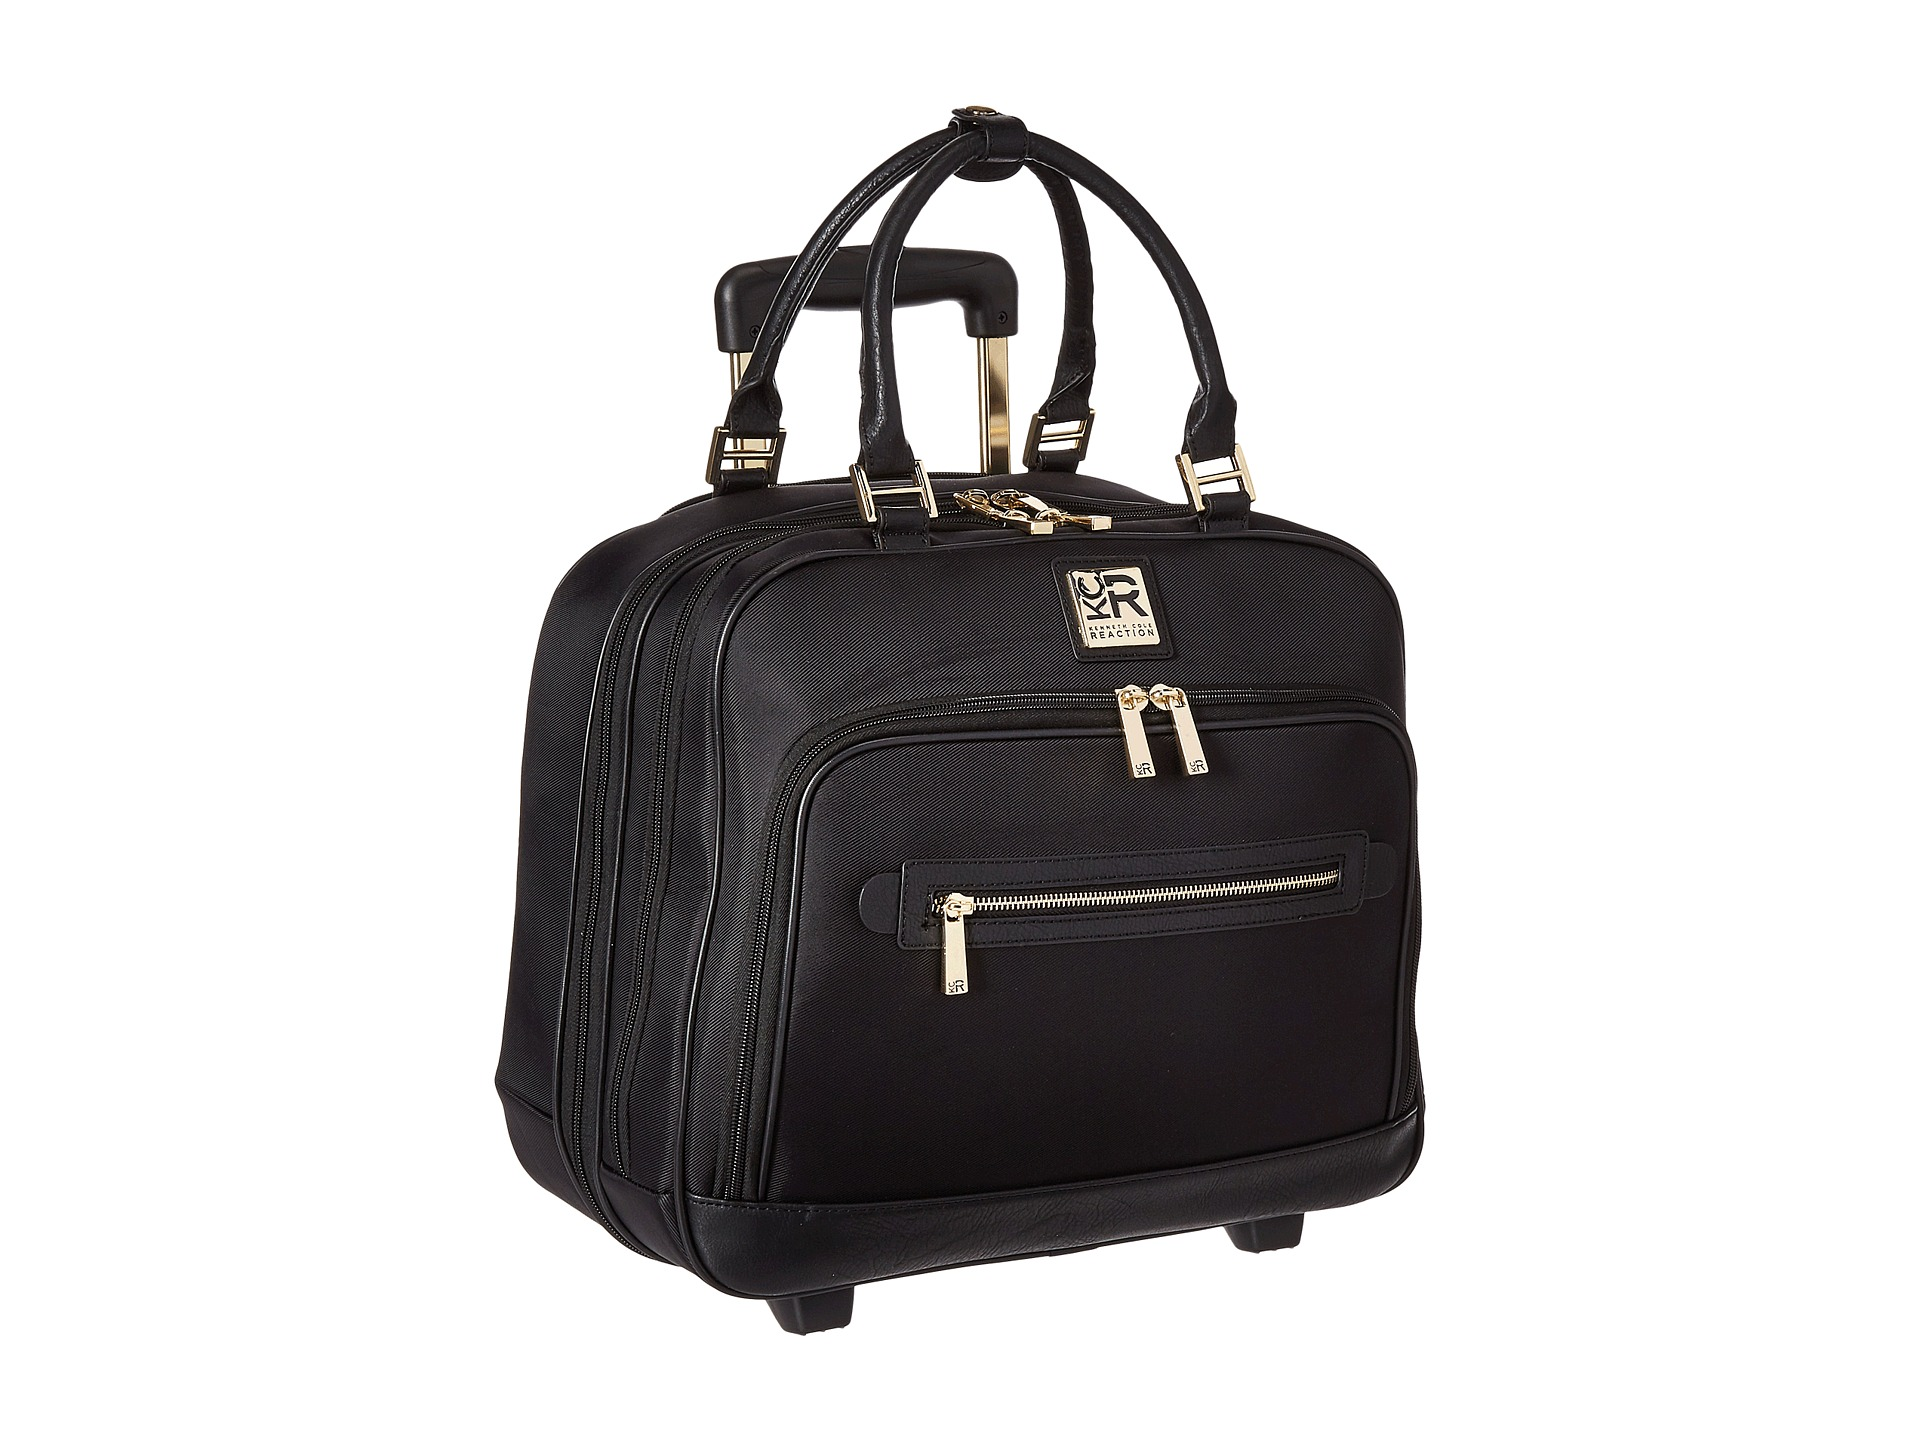 kenneth cole reaction give me a call wheeled tote